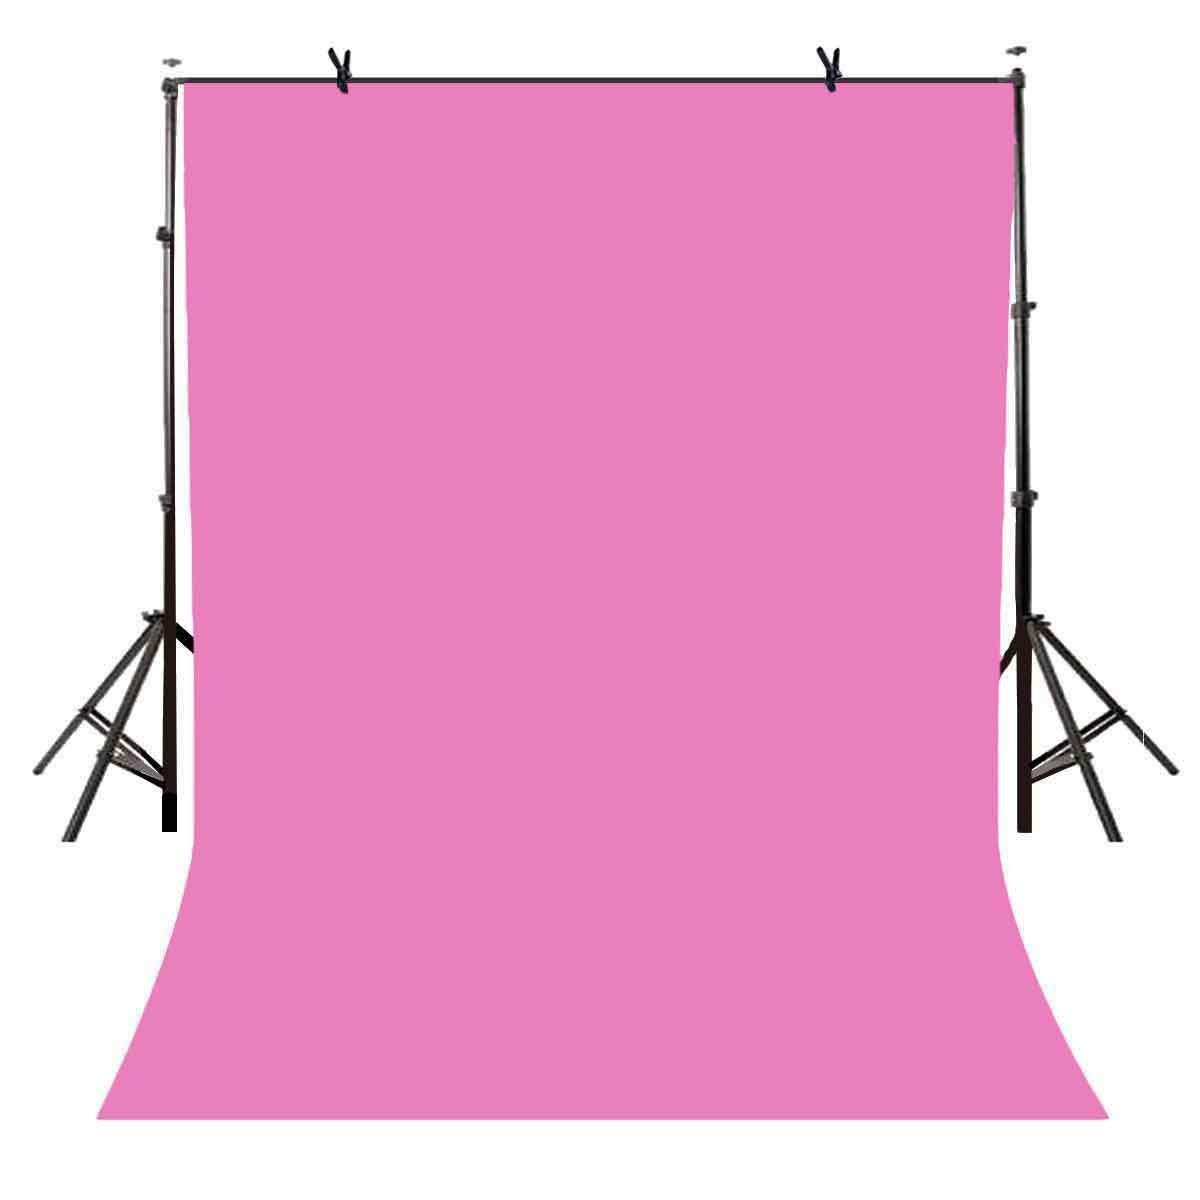 150x220cm Photography Studio Non-woven Backdrop Millennium Pink Solid Color Simple Background LY091